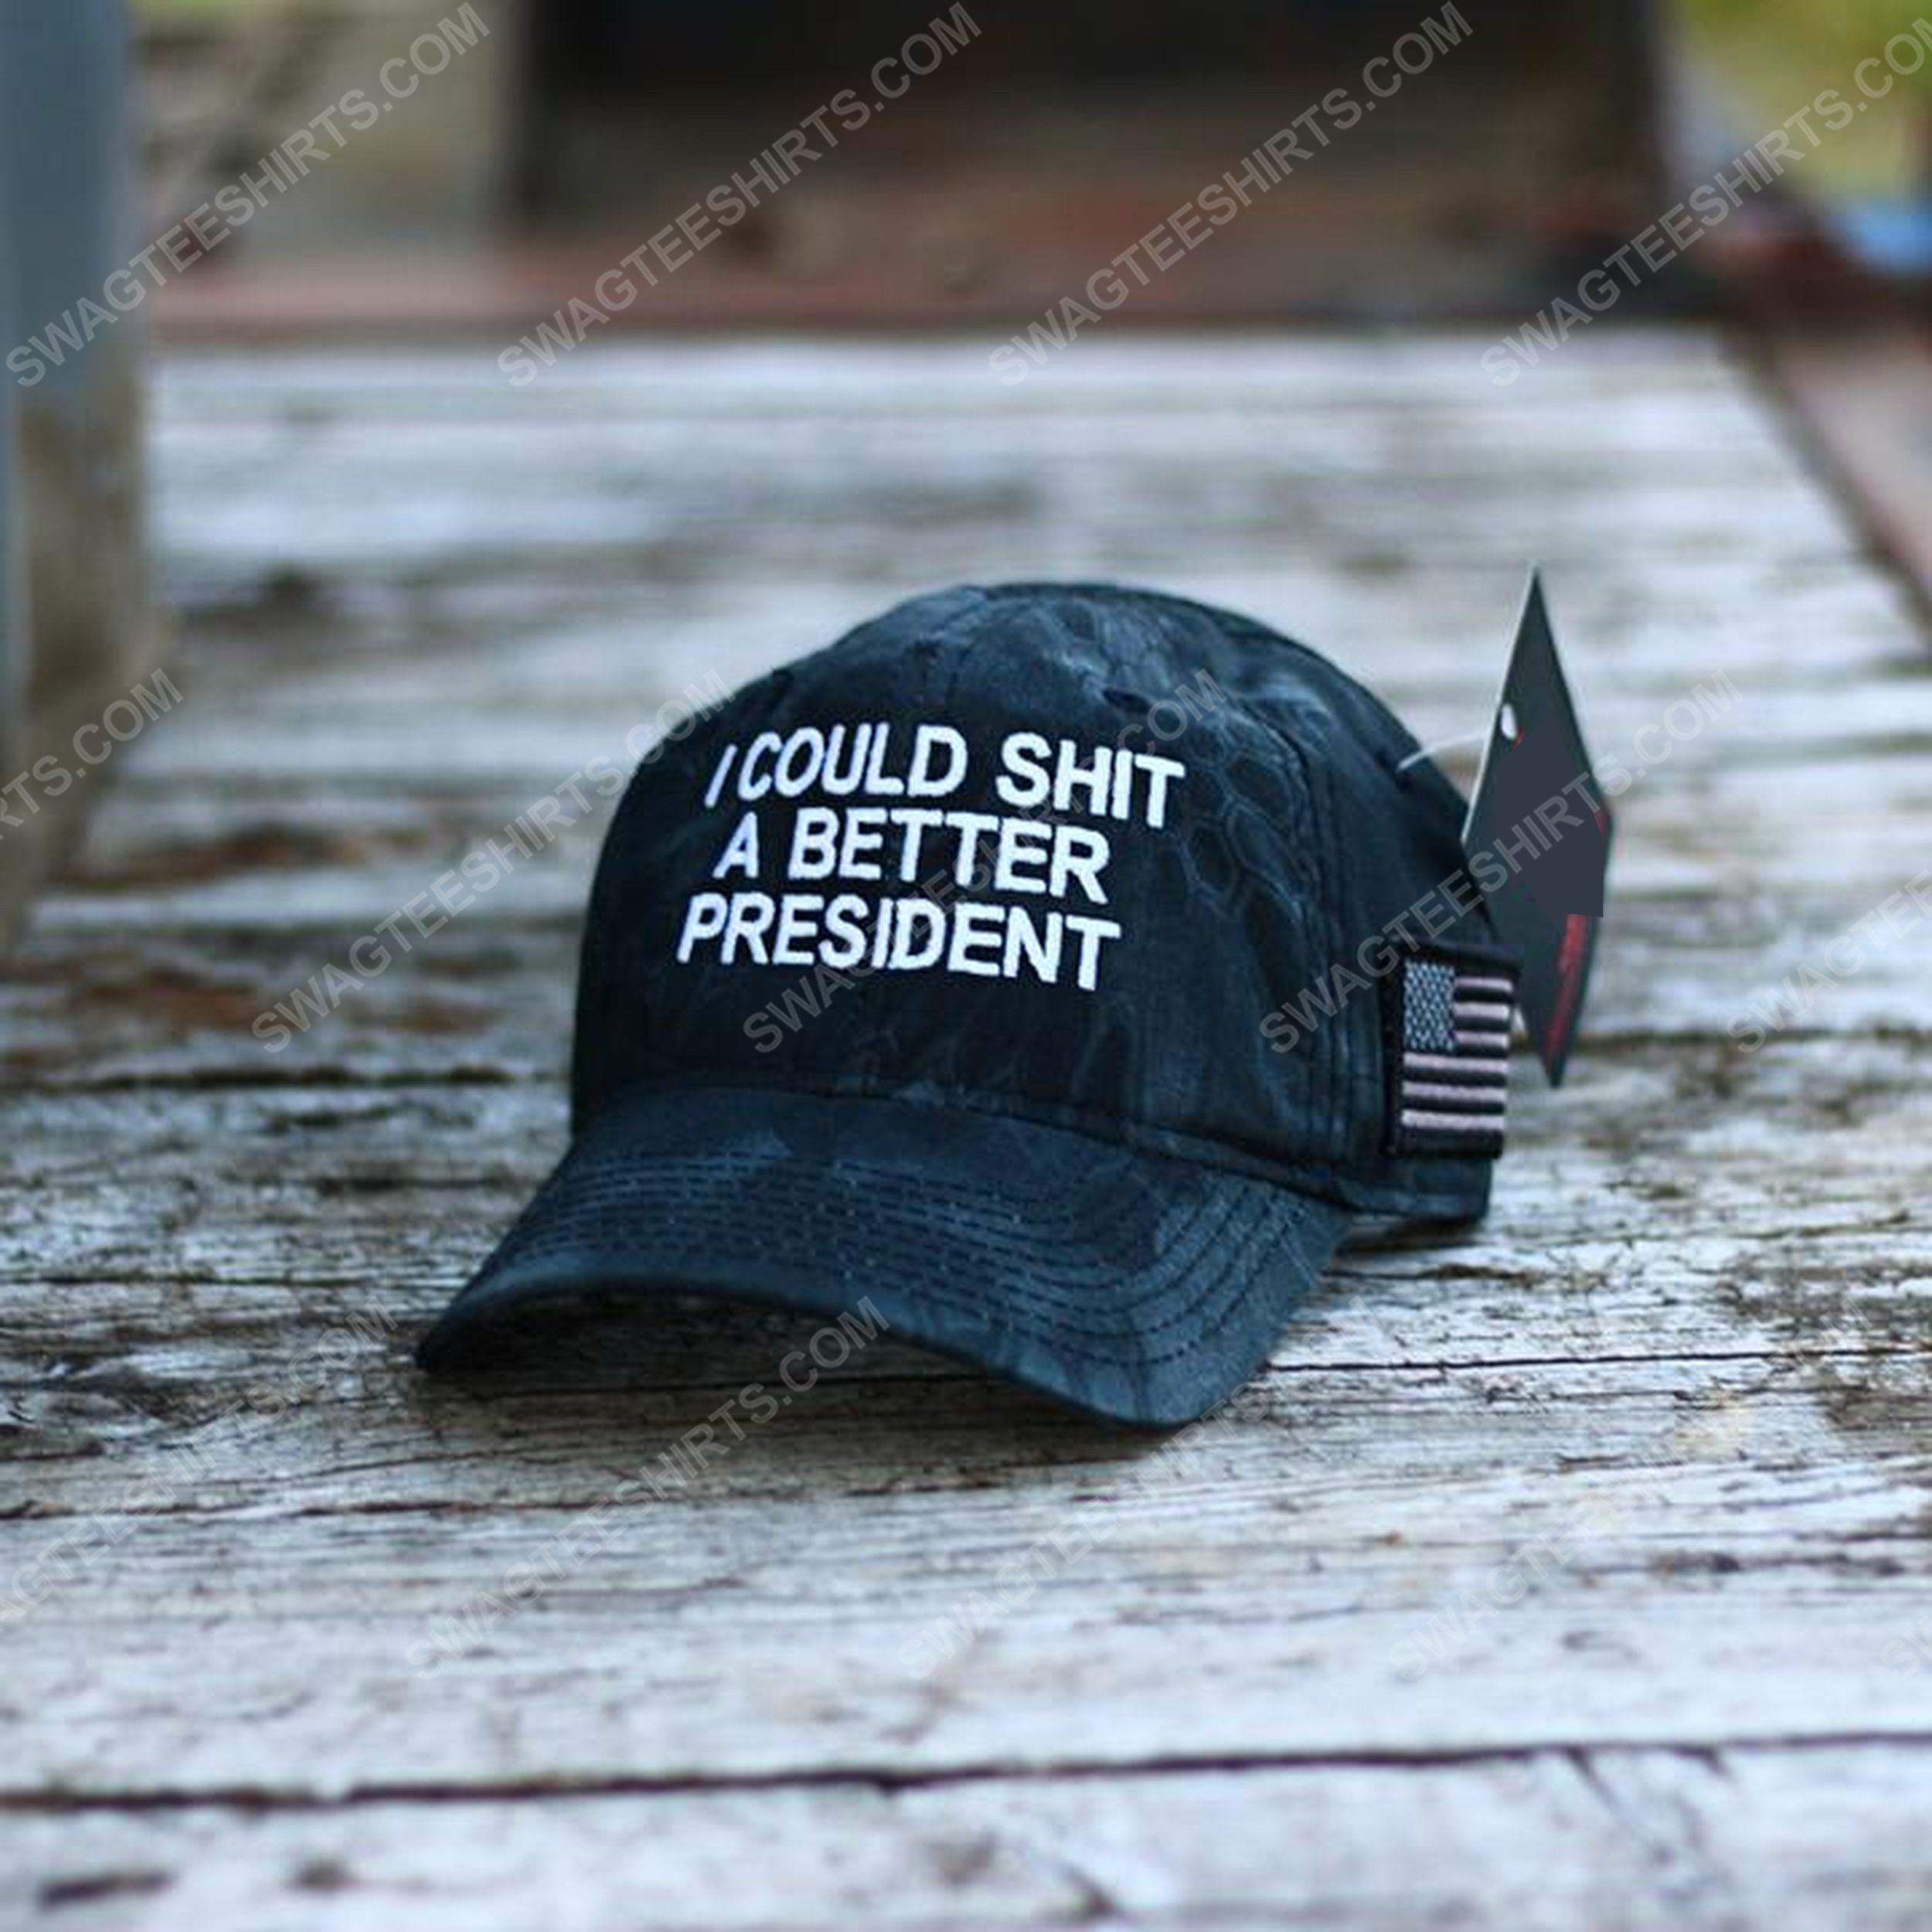 I could shit a better president full print classic hat 1 - Copy (3)